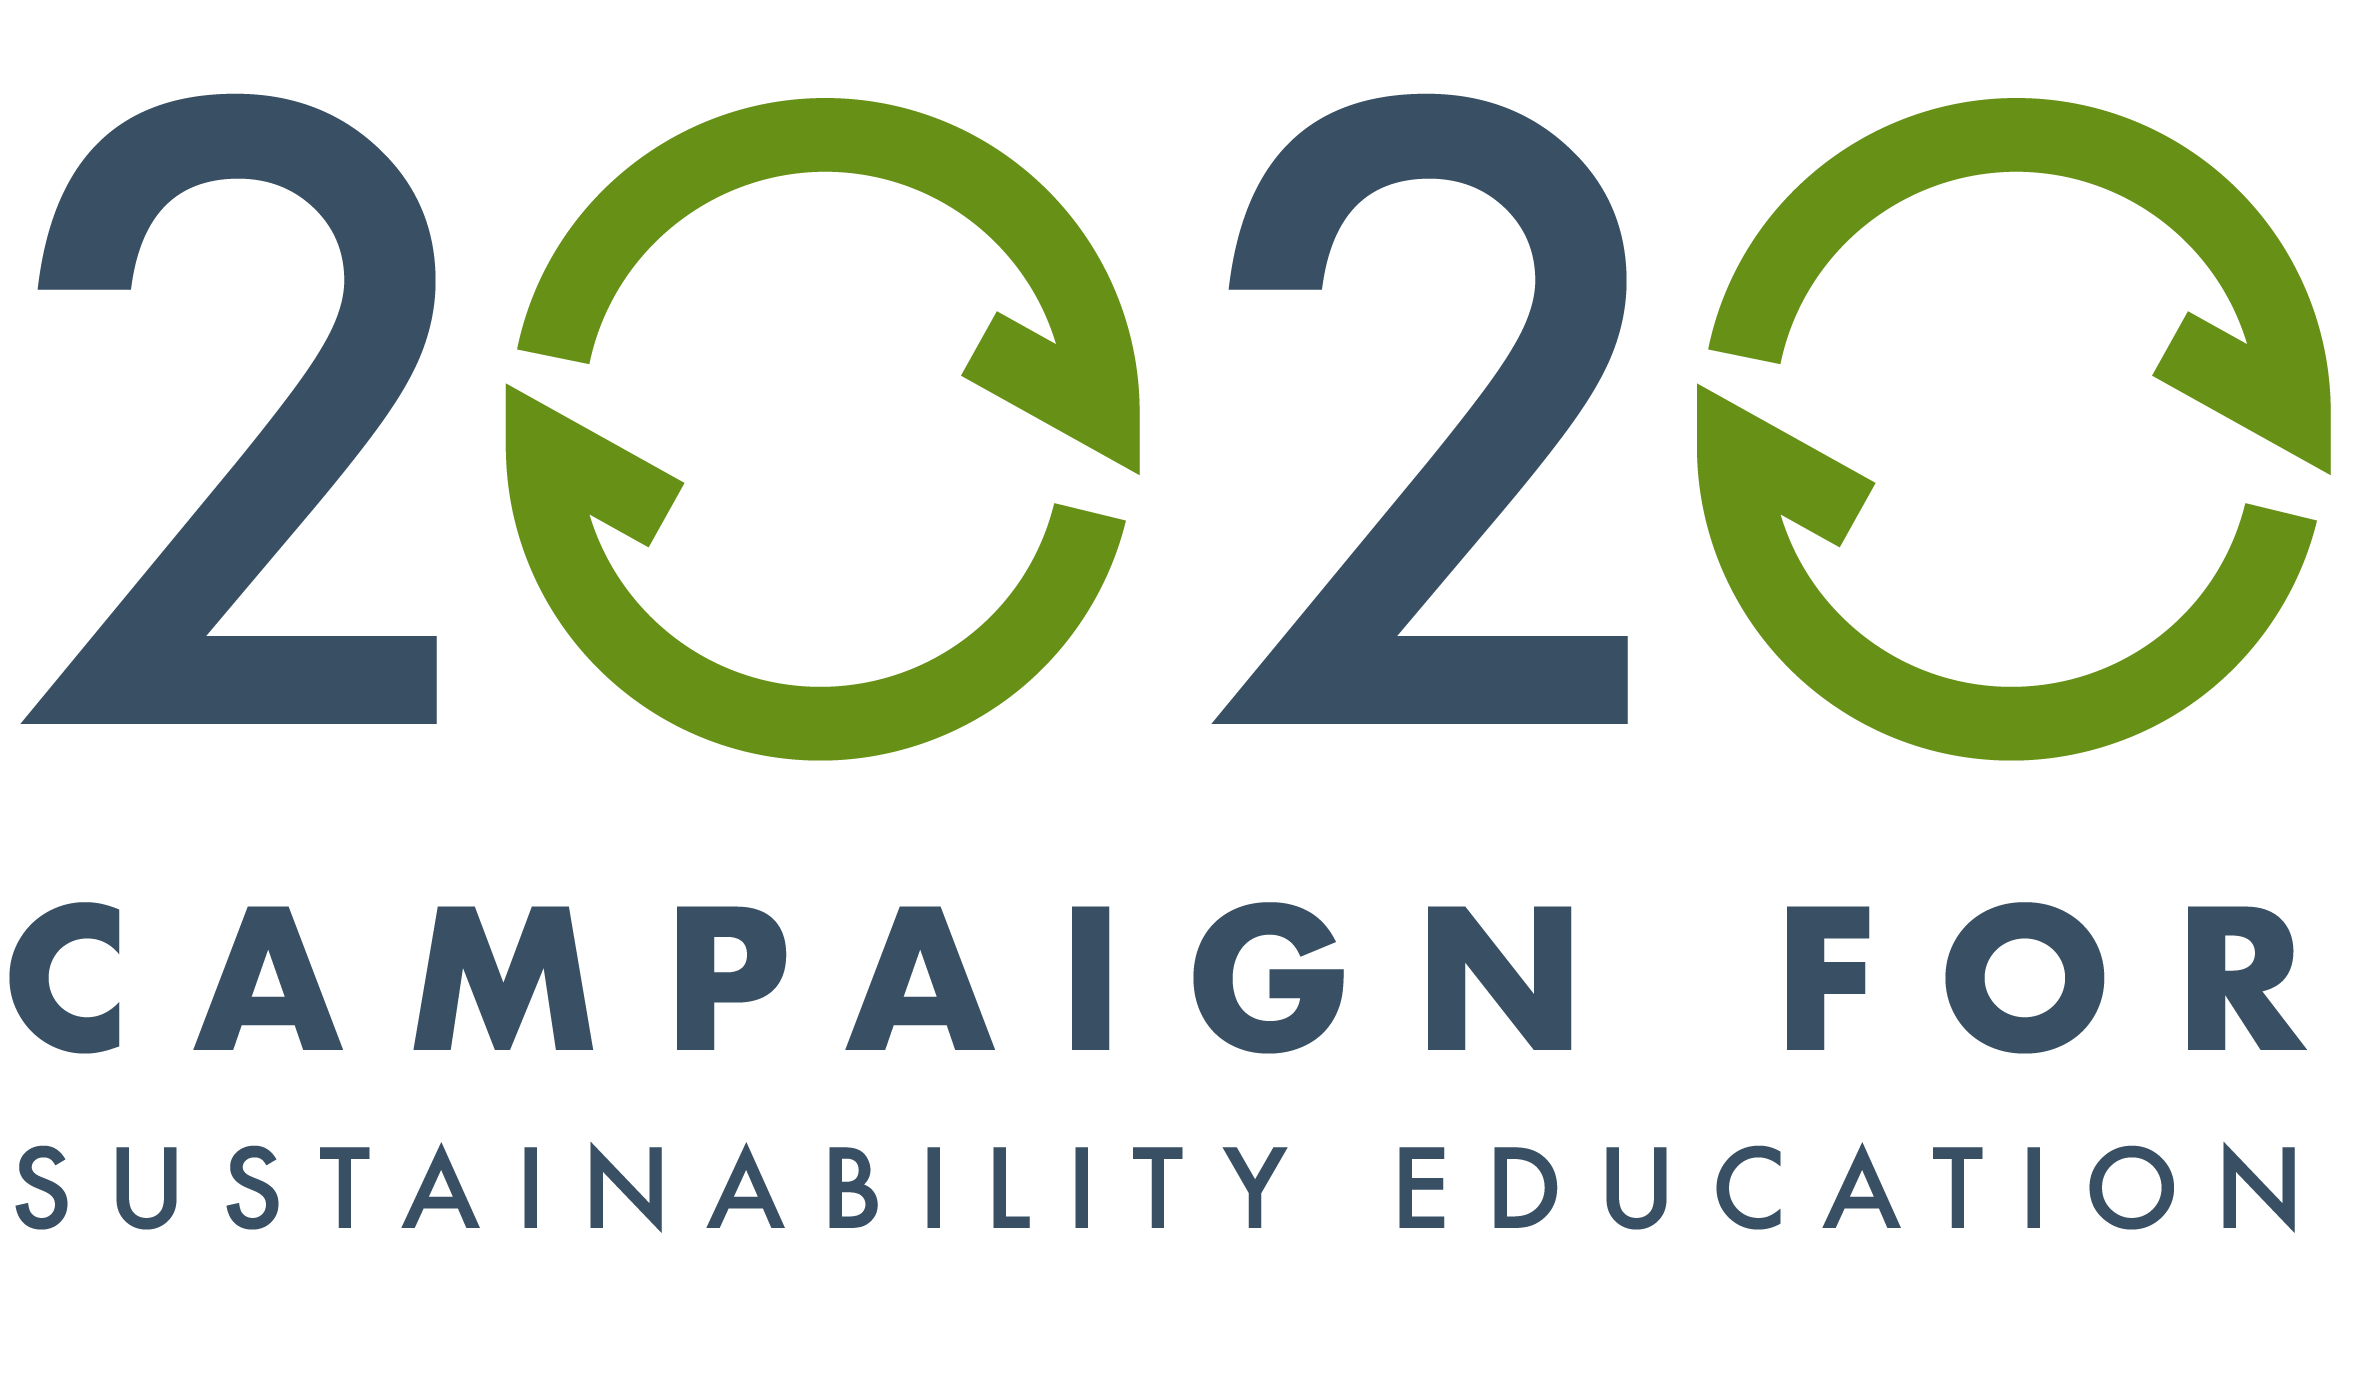 Individual, corporate, and foundation giving campaign to raise $40,000 before 2020 to support Sustainable Classrooms